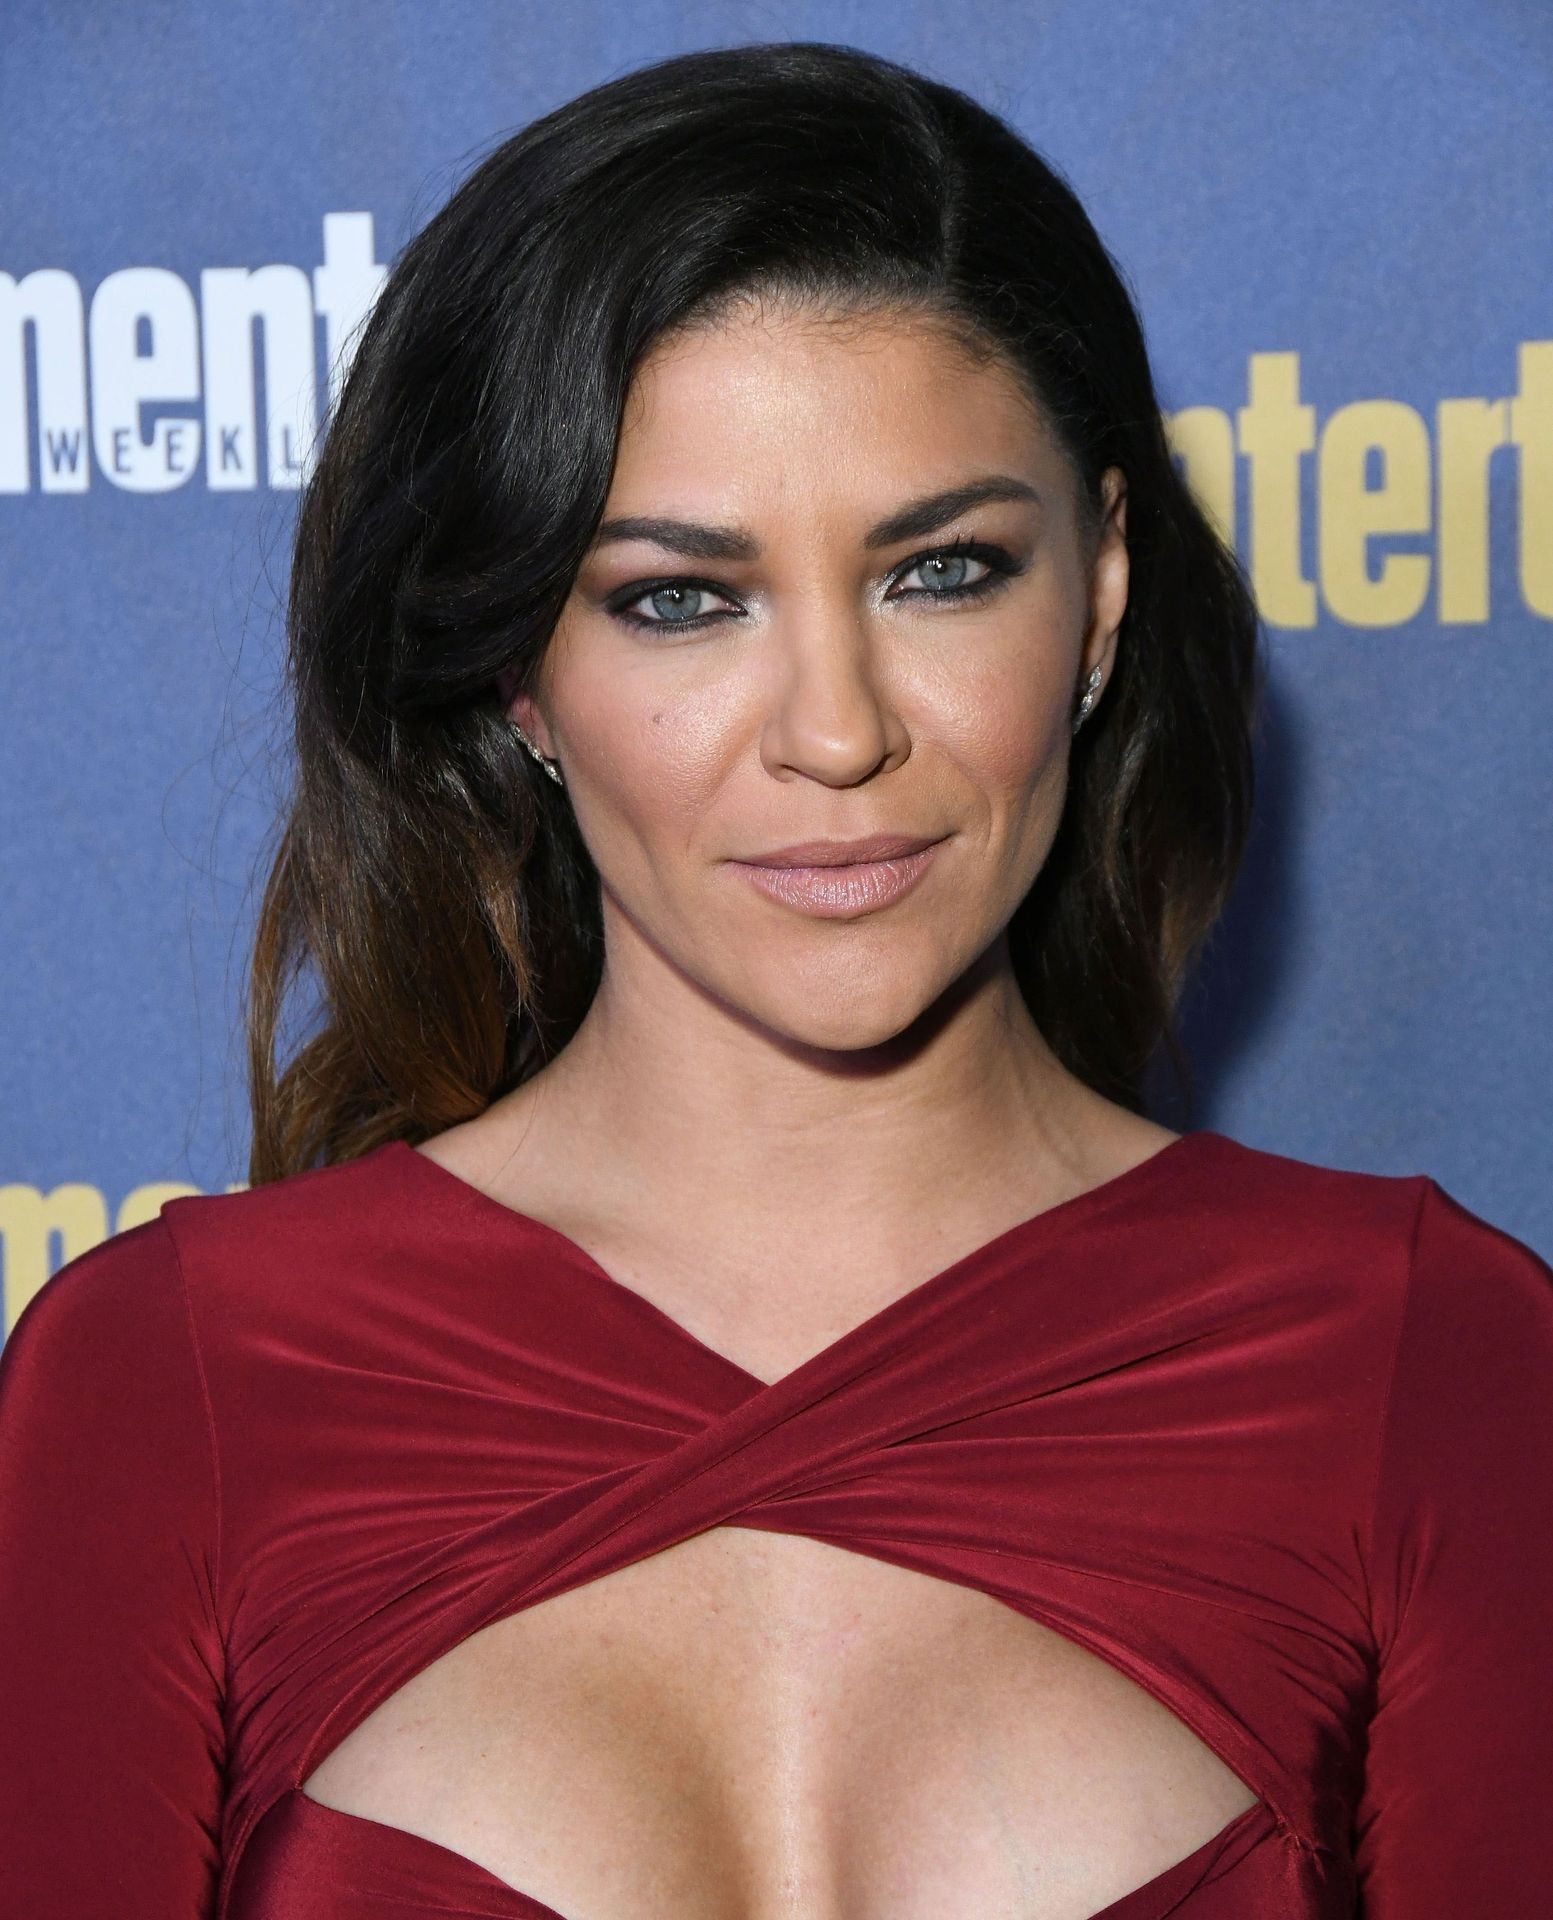 Jessica Szohr Shows Her Cleavage At The Entertainment Weekly Pre Sag Awards Celebration 0016